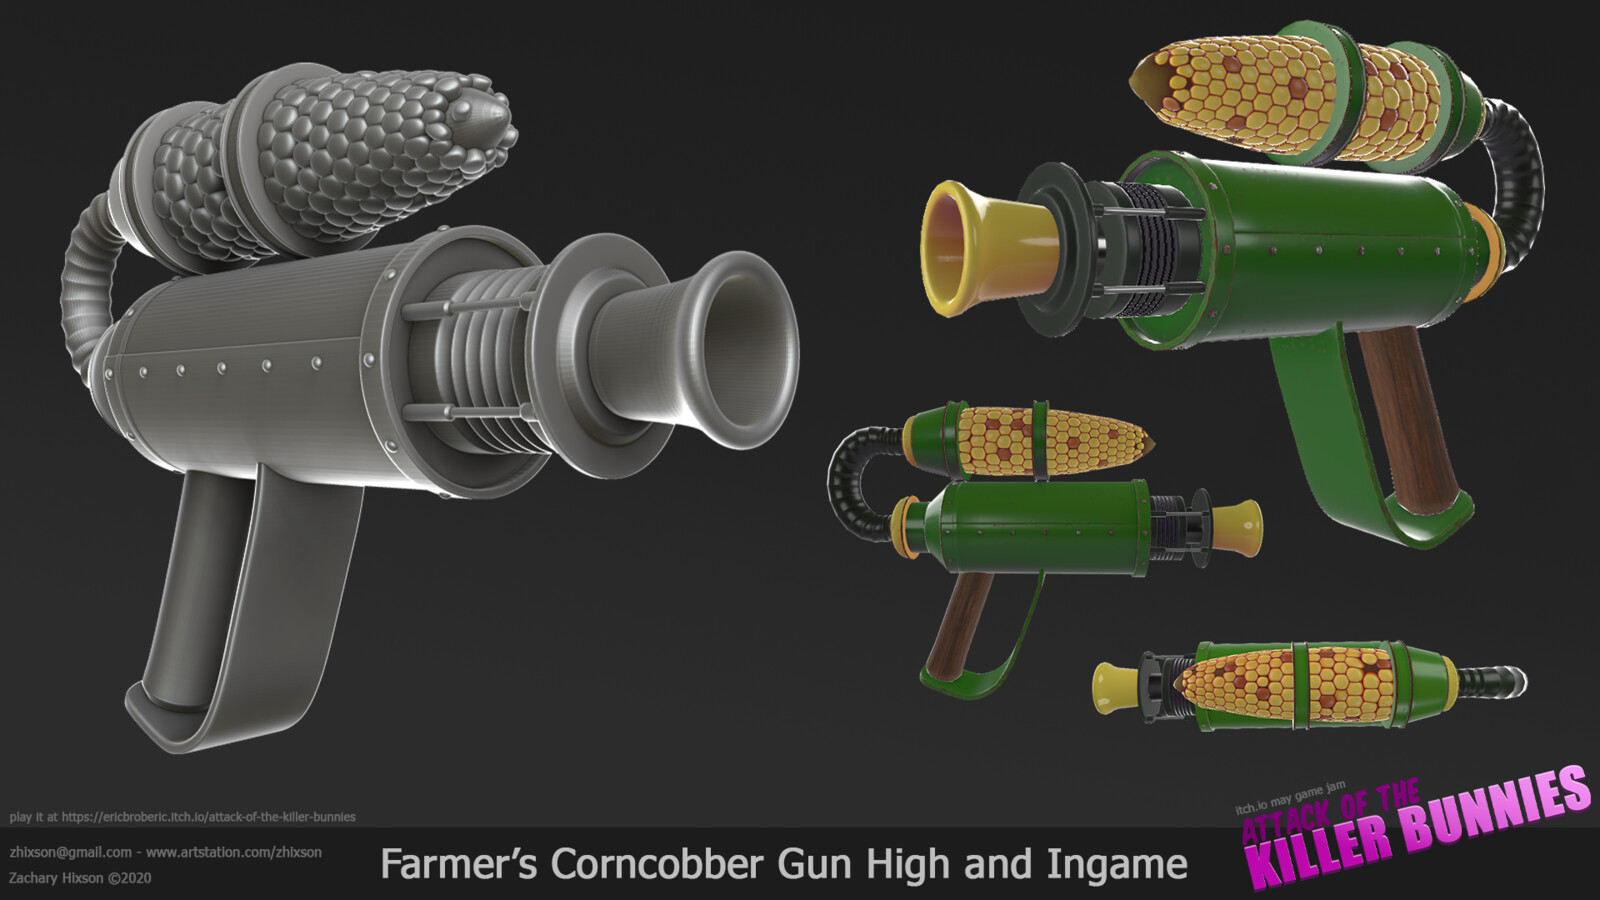 The farmer's weapon: The Corncobber. Yes, it grinds up an ear of corn and shoots the kernels at things. High and low were created in 3DS Max and texturing was done in Substance Painter